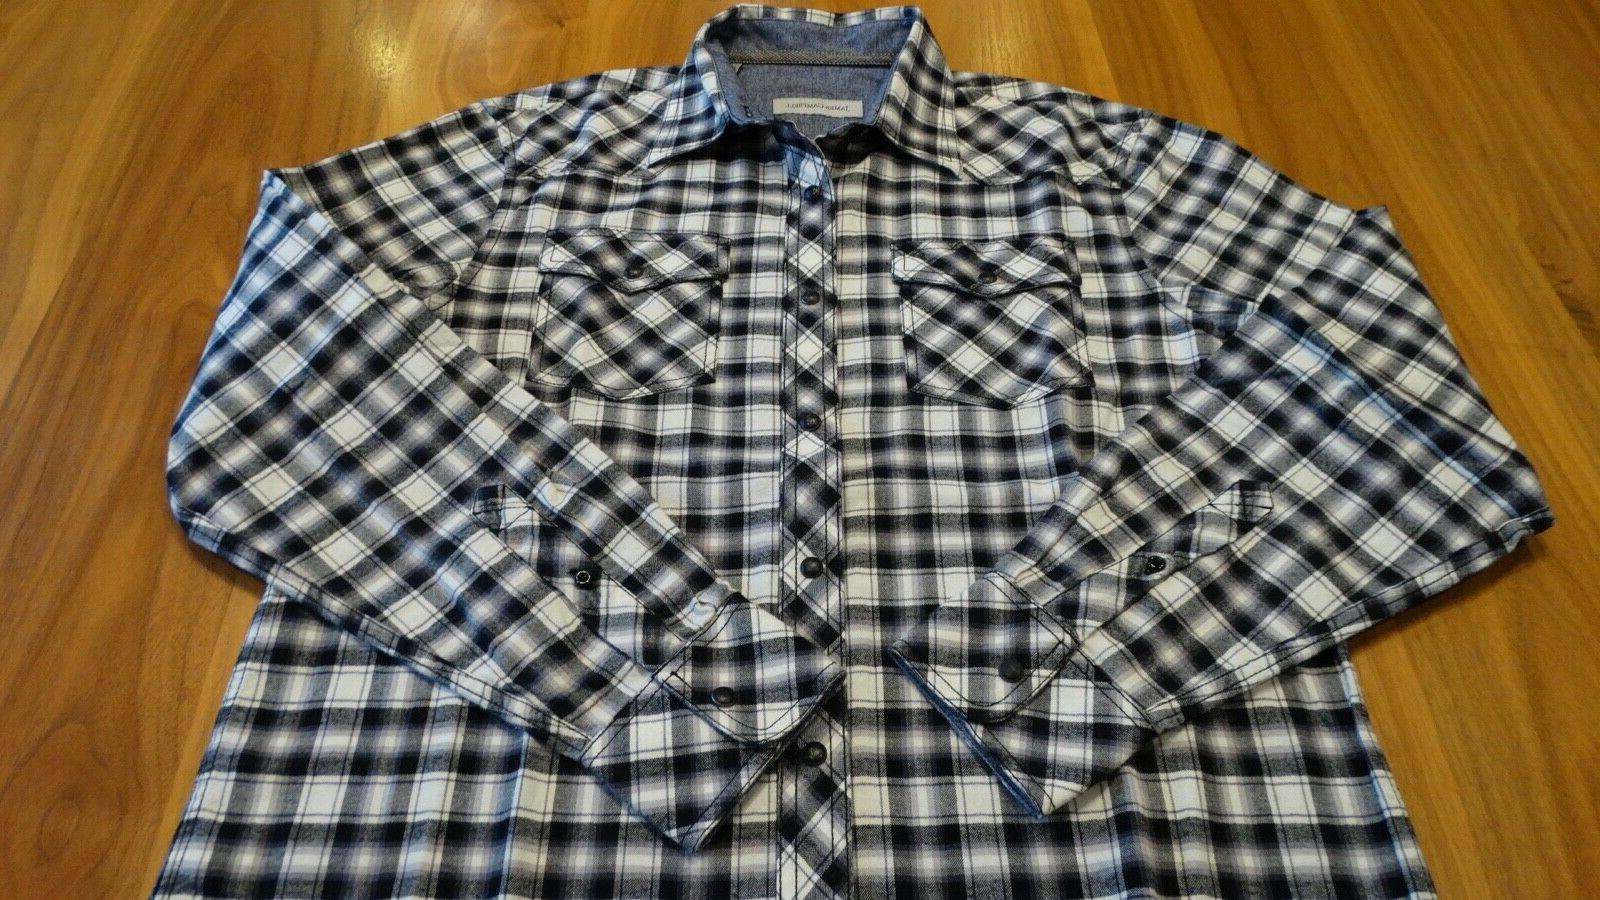 James Campbell Flannel Shirts | Brand | Lot of 2